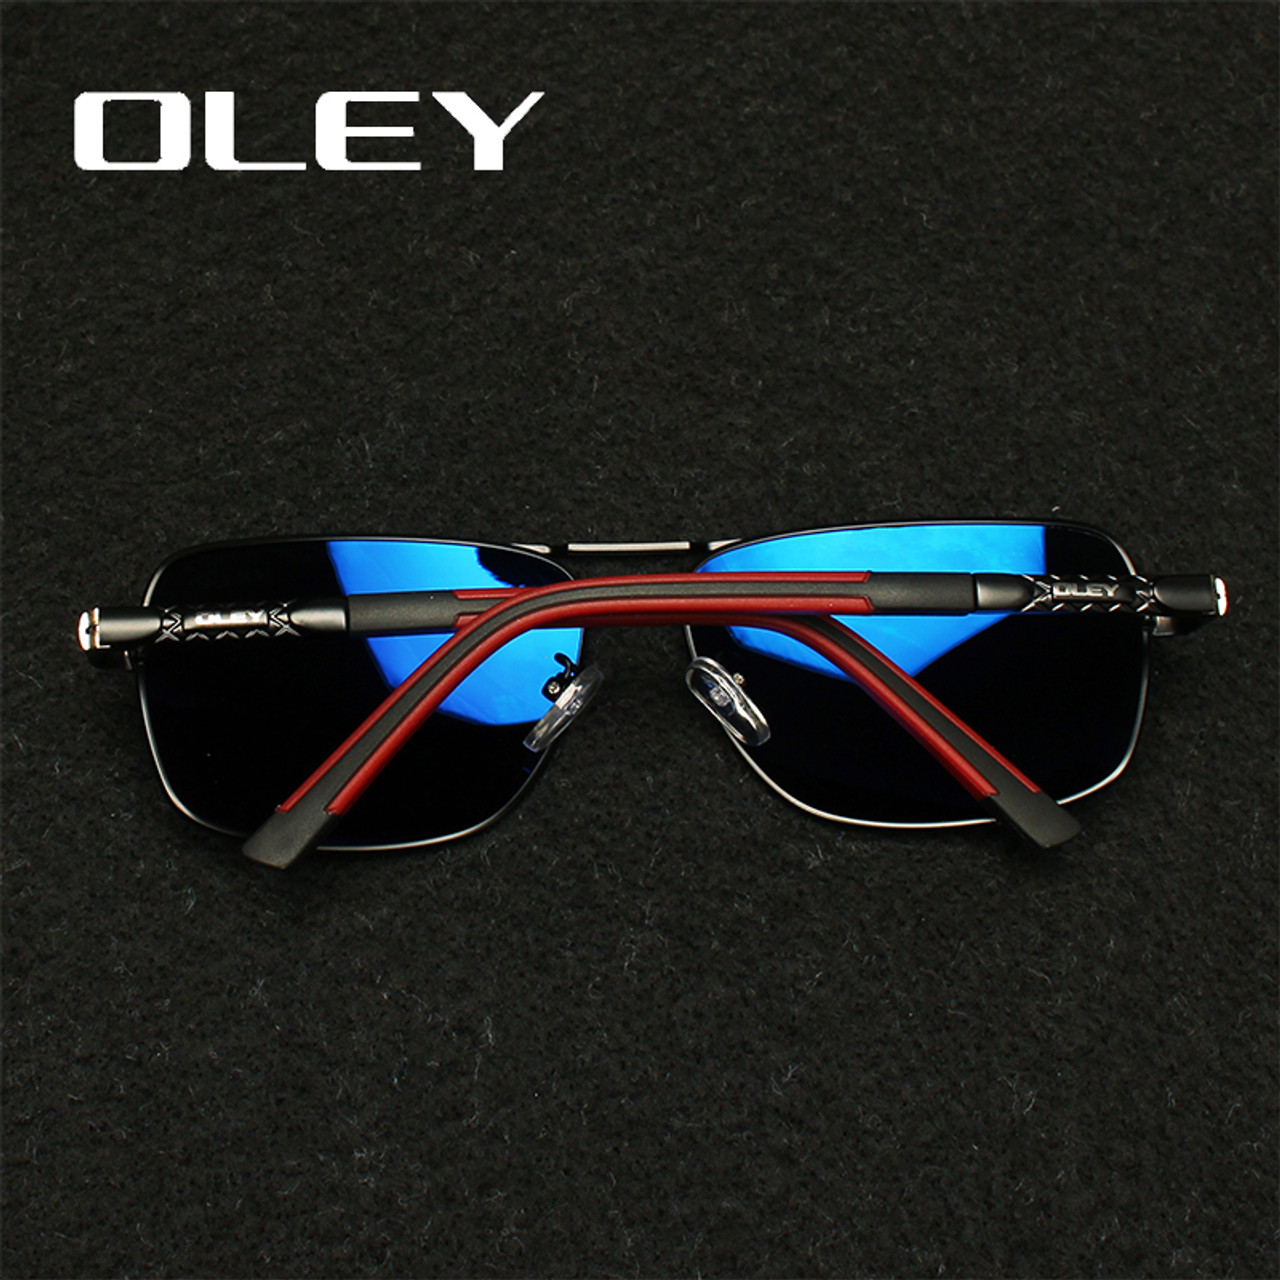 35f674b9fc6 ... OLEY Brand Polarized Sunglasses Men New Fashion Eyes Protect Sun Glasses  With Accessories Unisex driving goggles ...